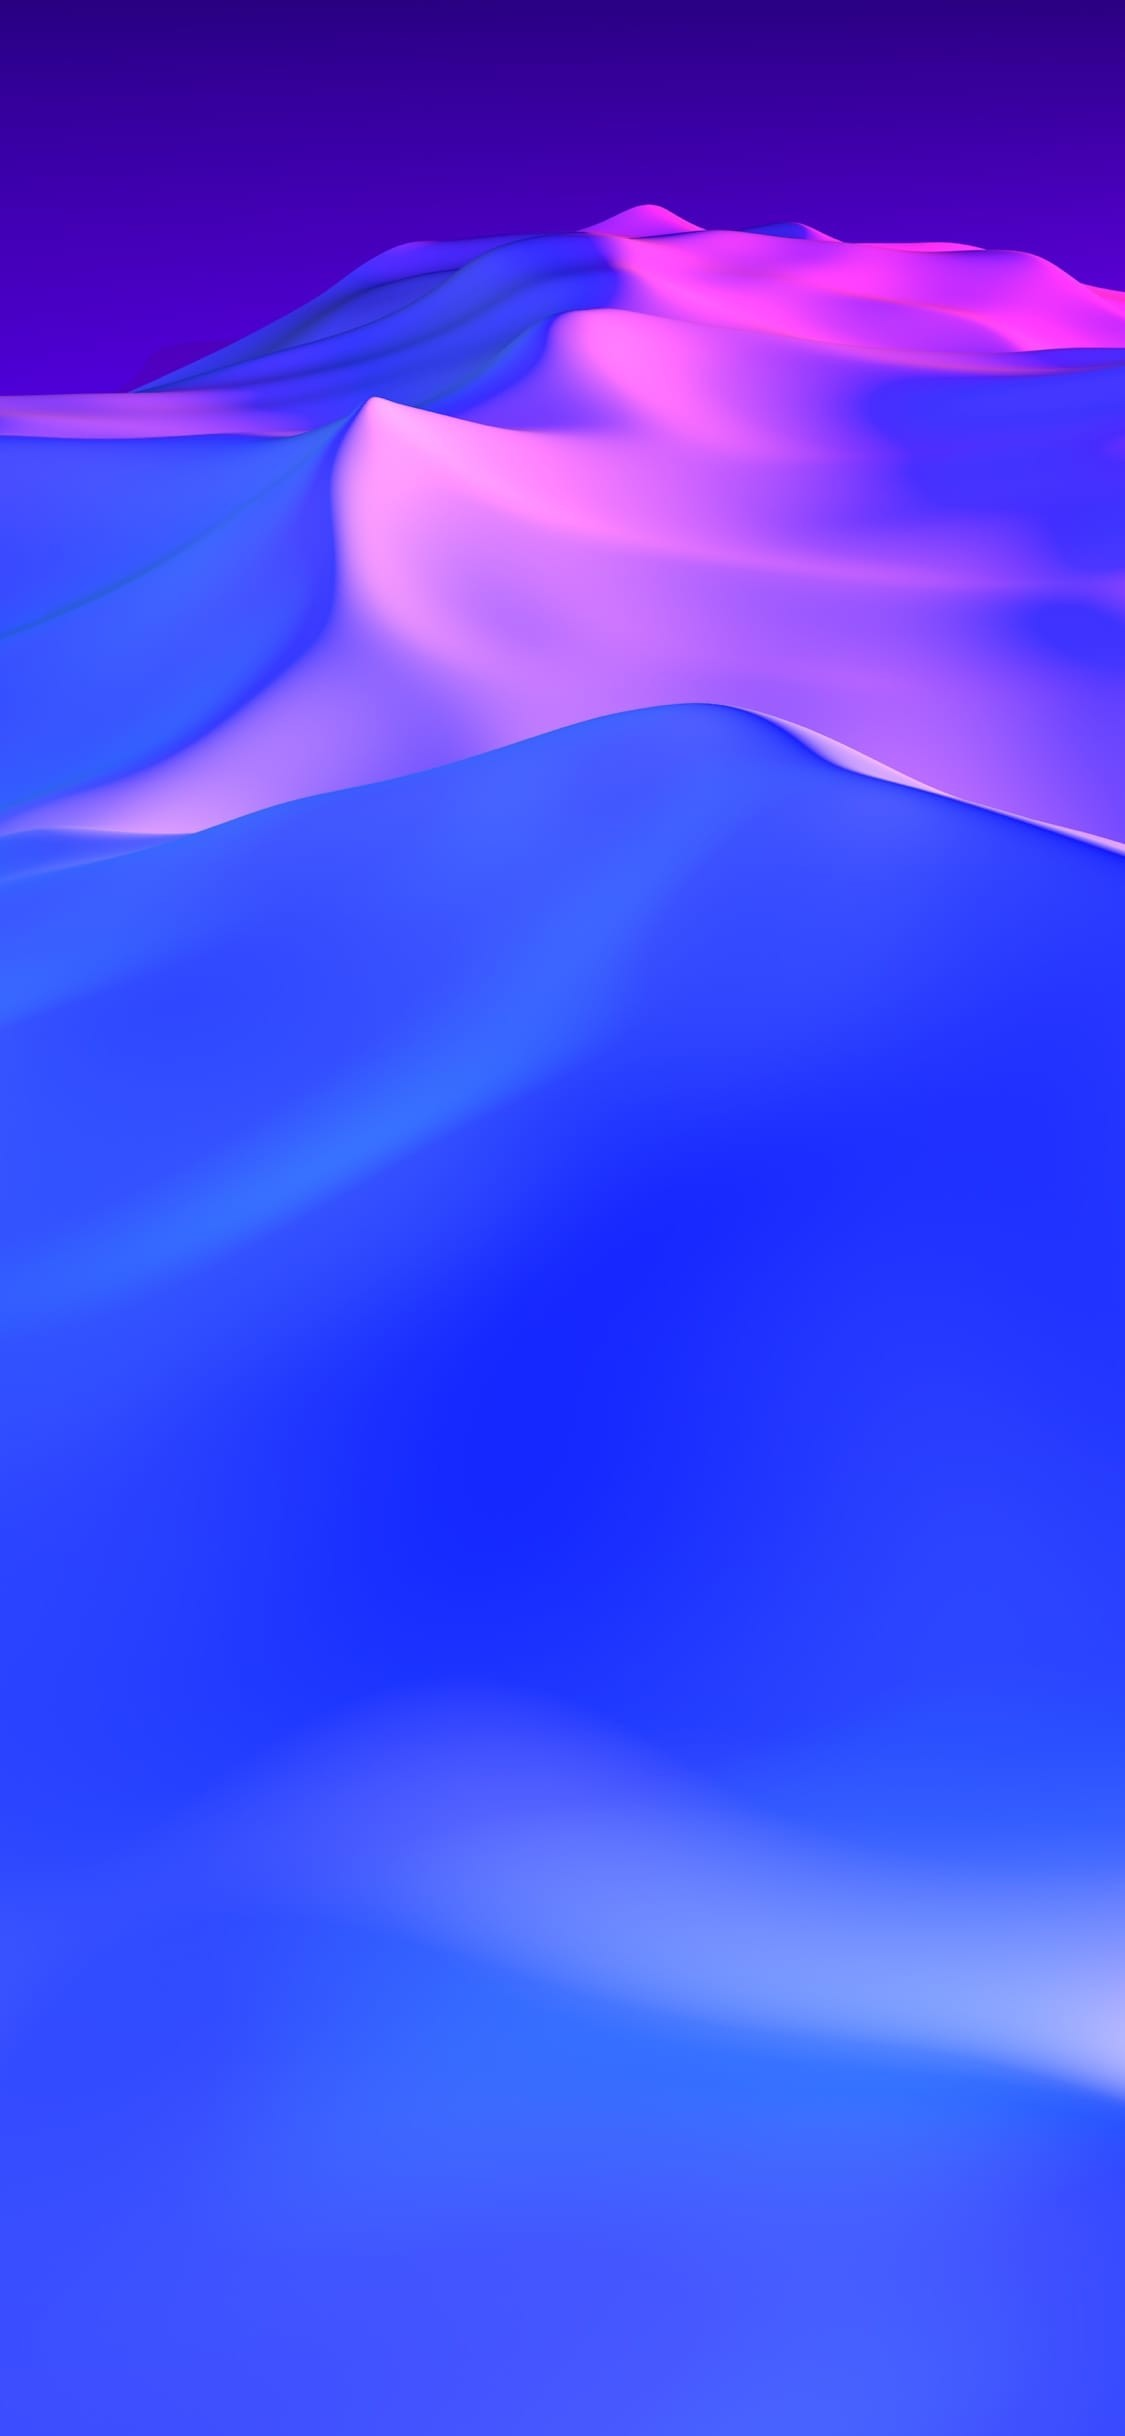 Res: 1125x2436, High-resolution wallpapers for your shiny new iPhone X.